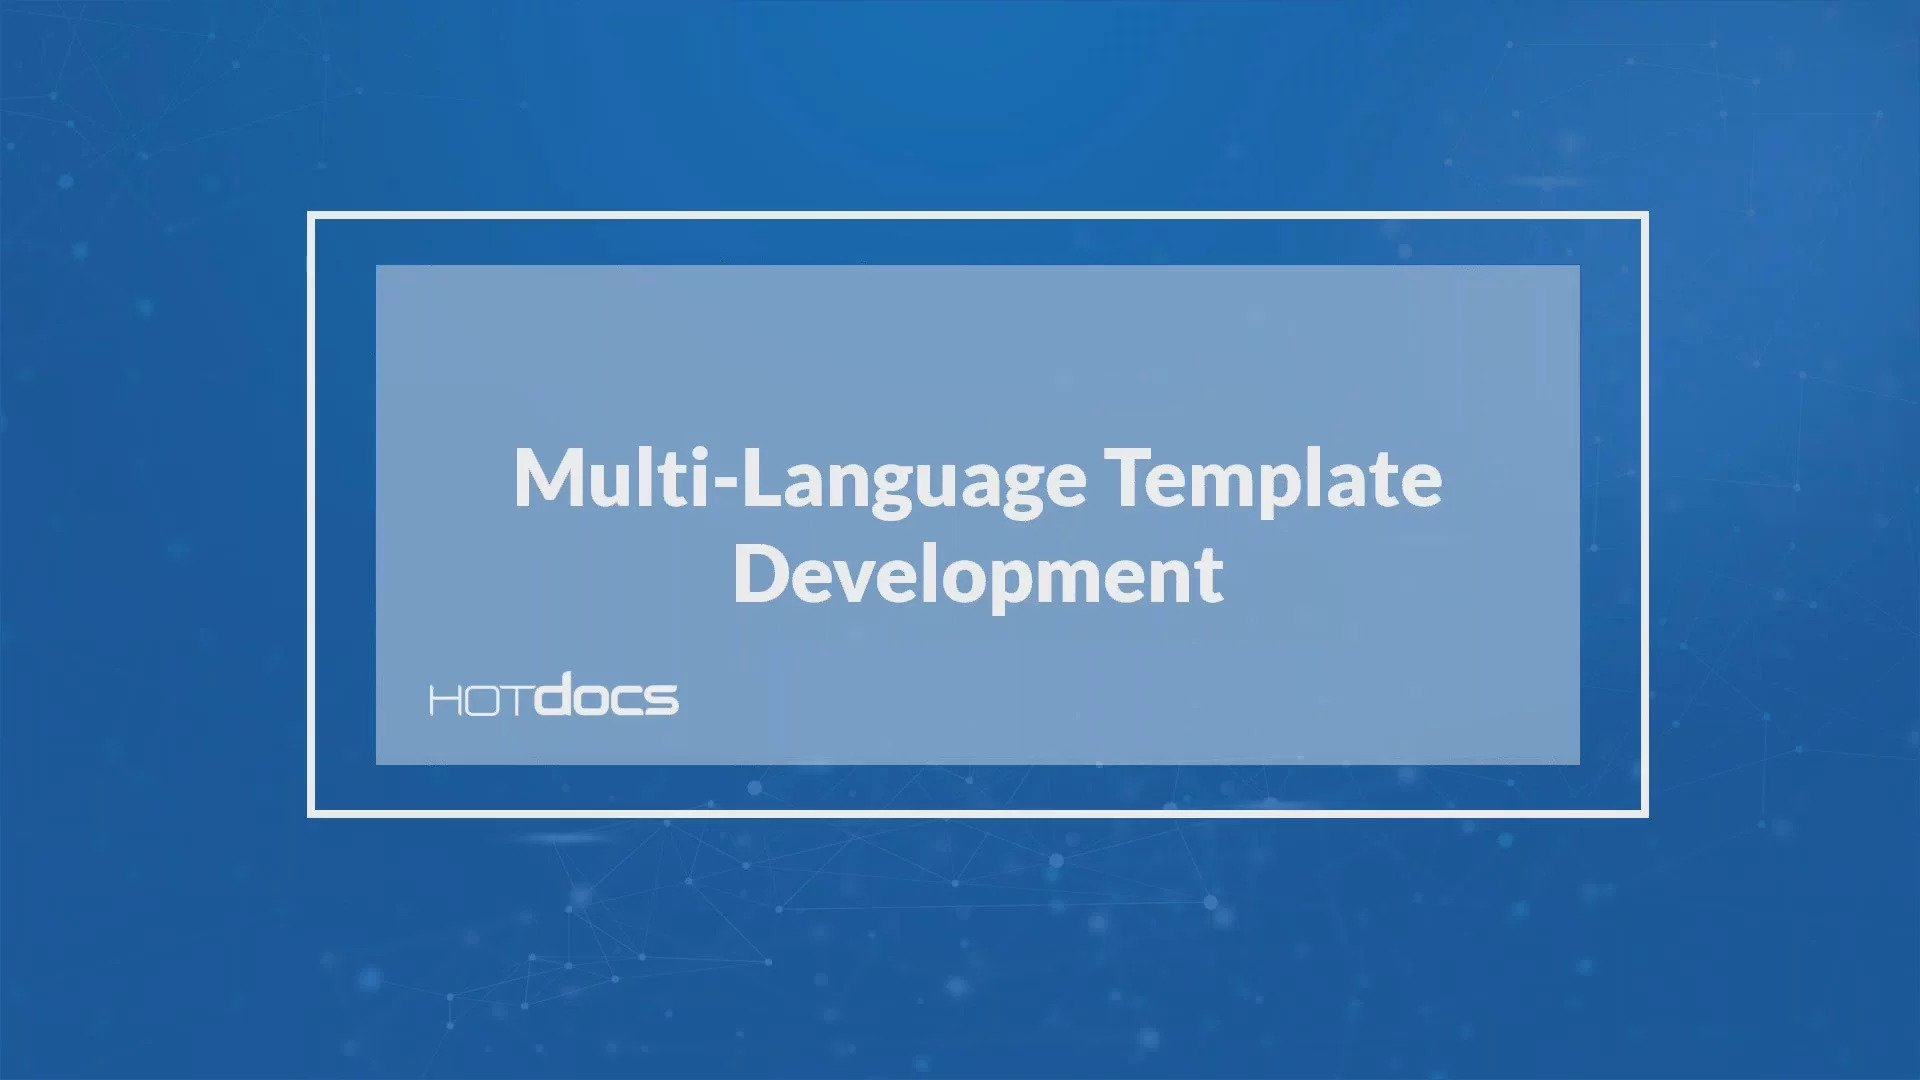 Multi-Language Template Development